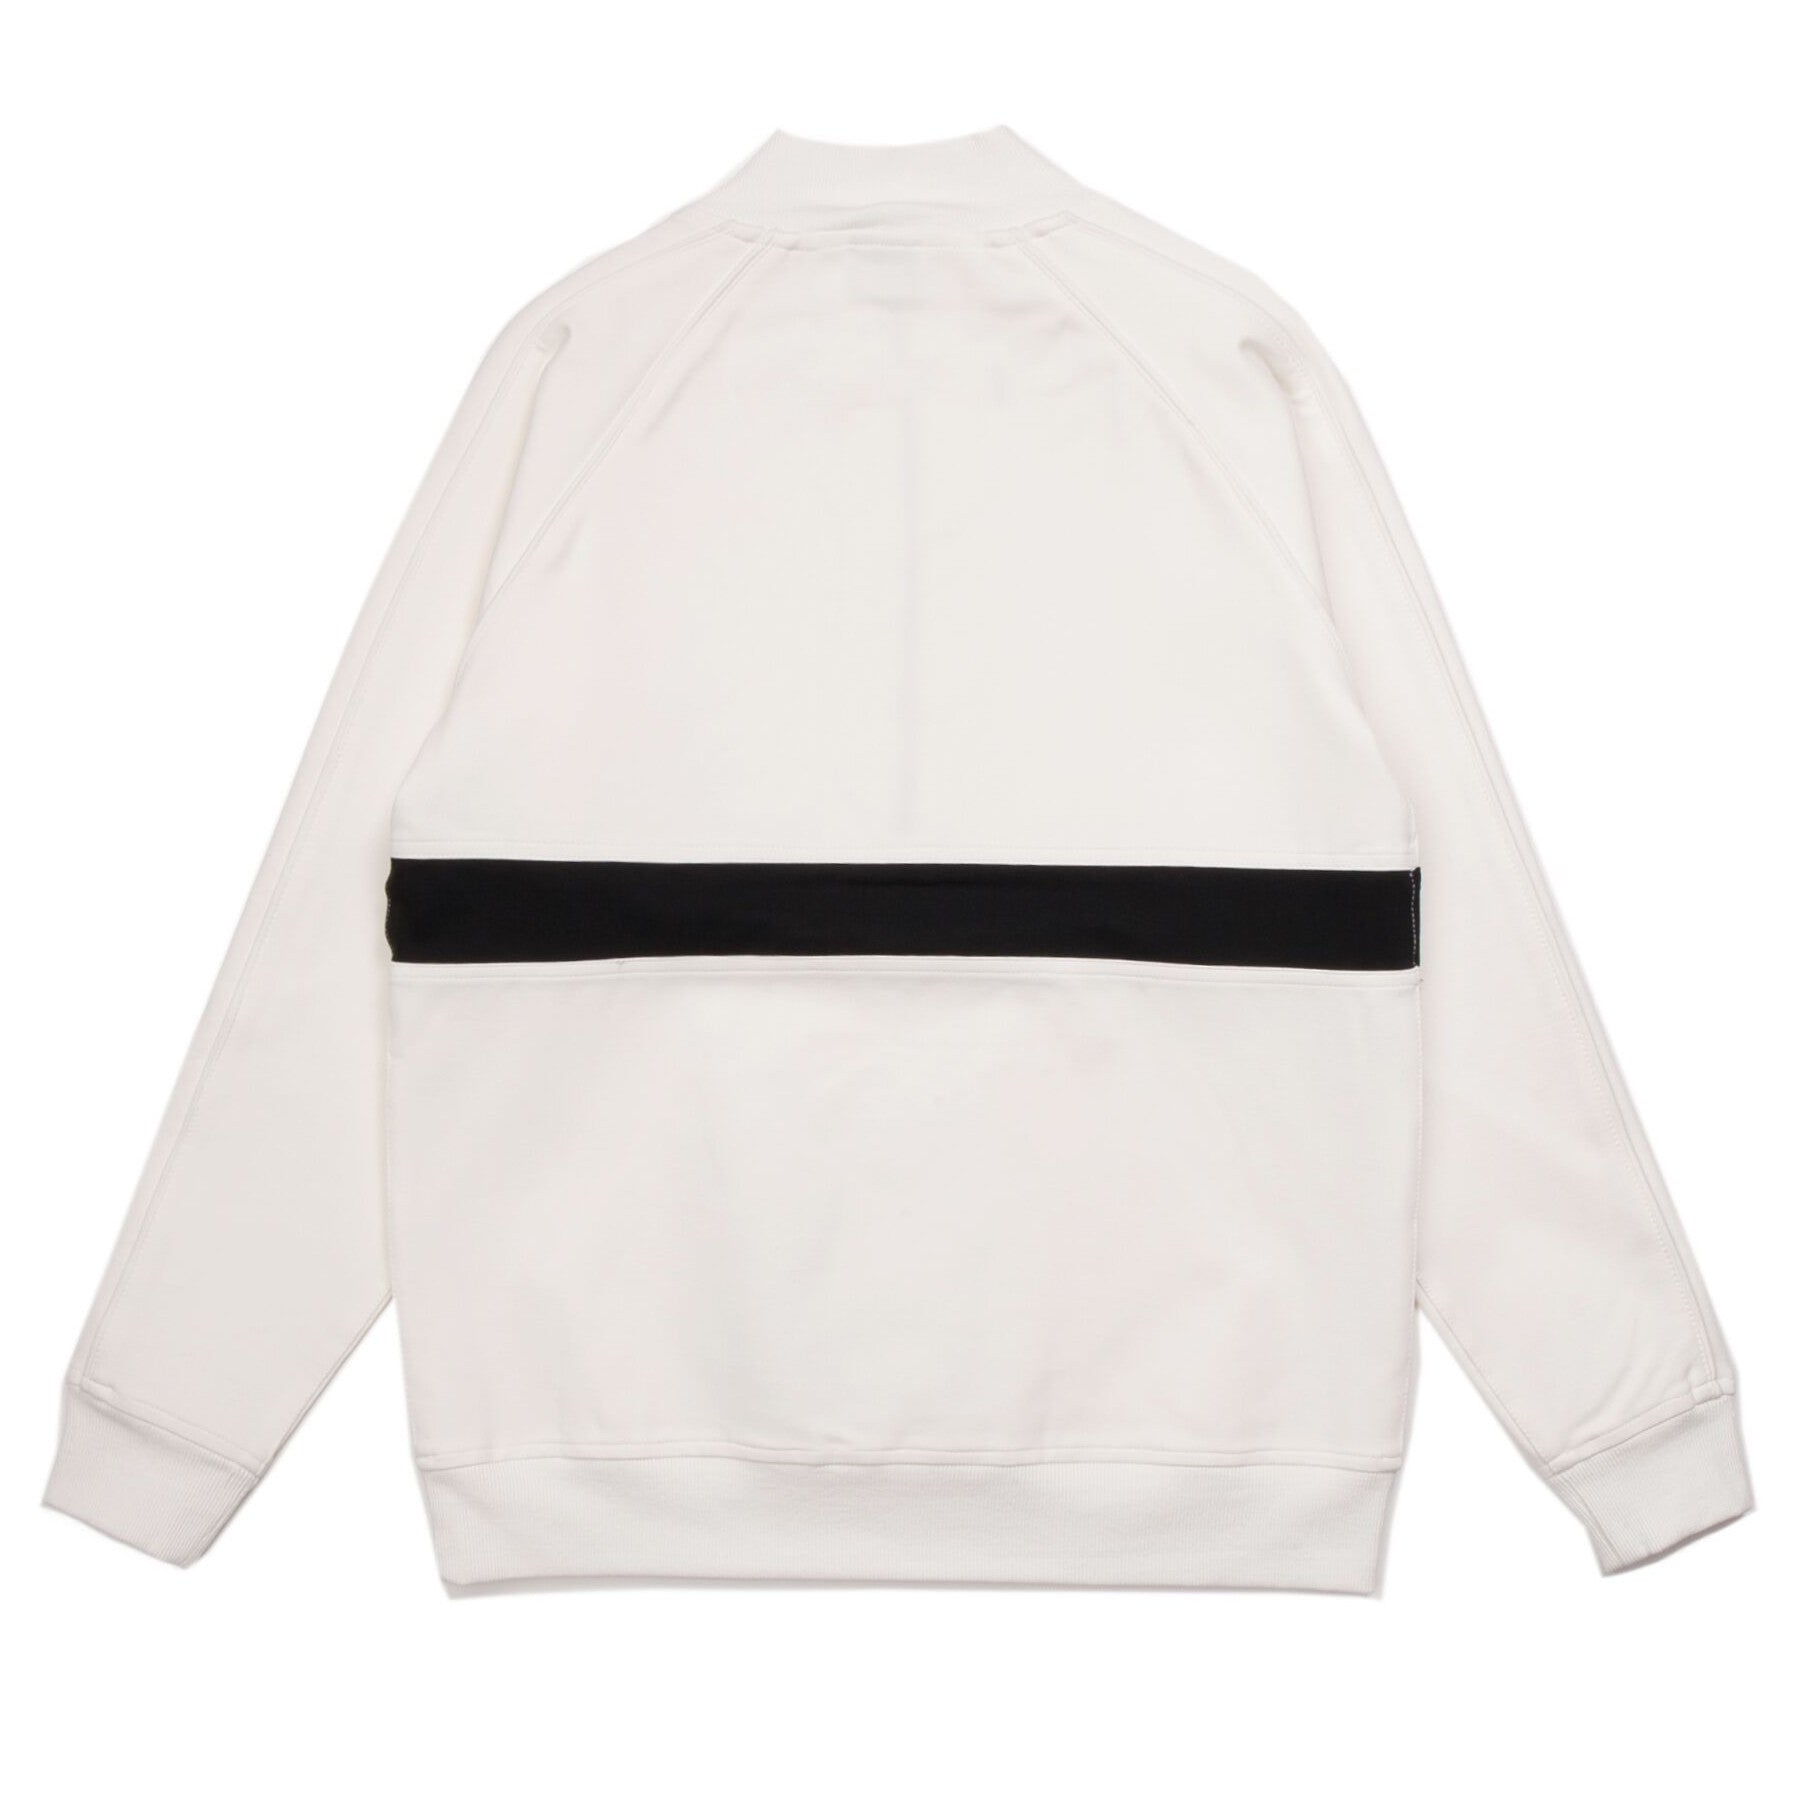 Kadam Track Jacket (White) - Publish